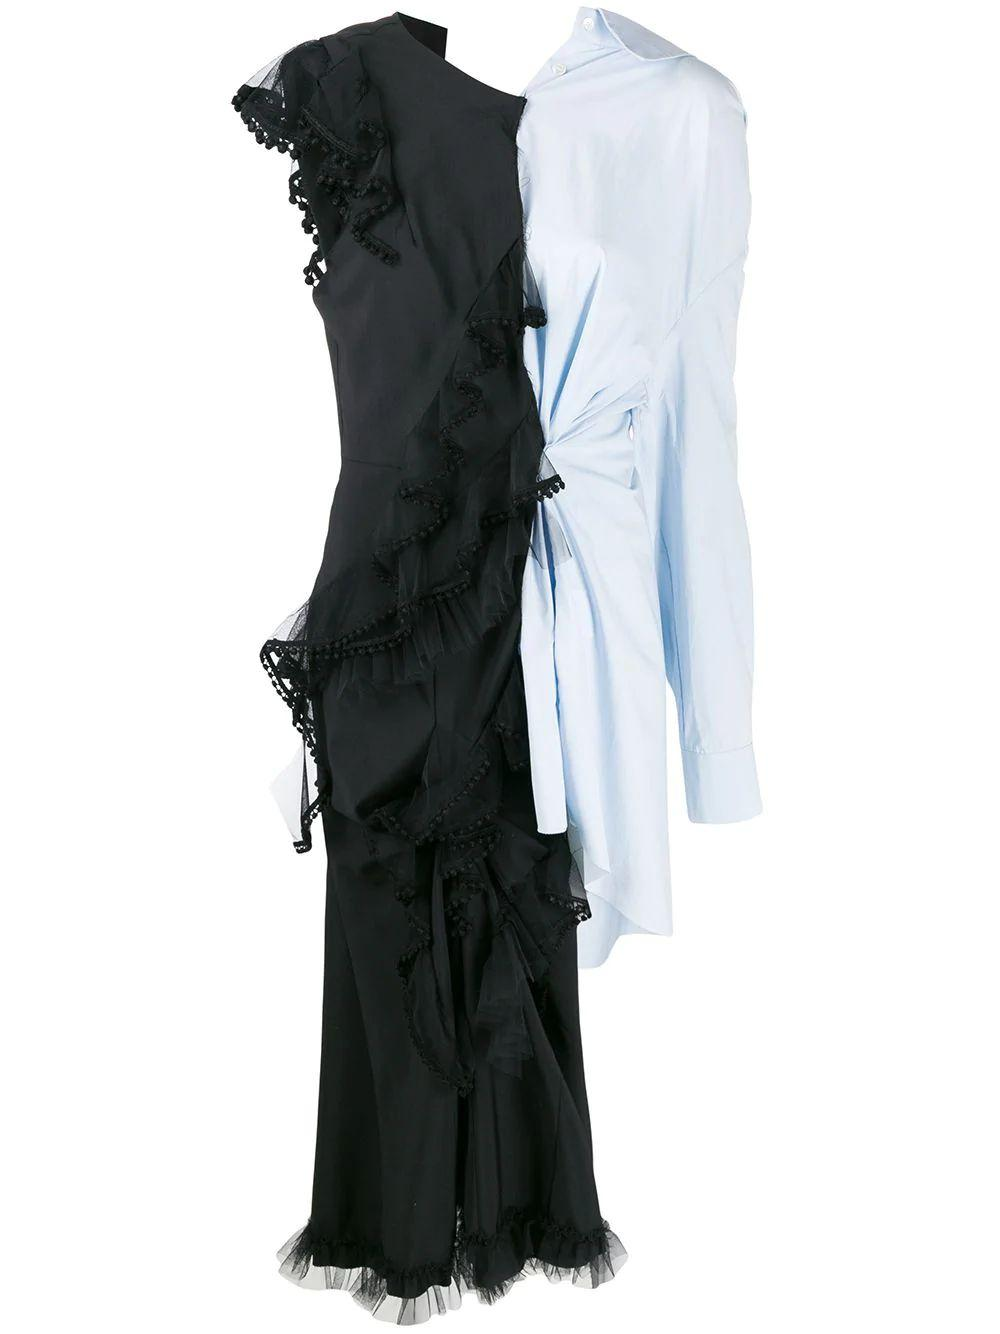 Sleeve Less Shirt With Asymmetric Dress